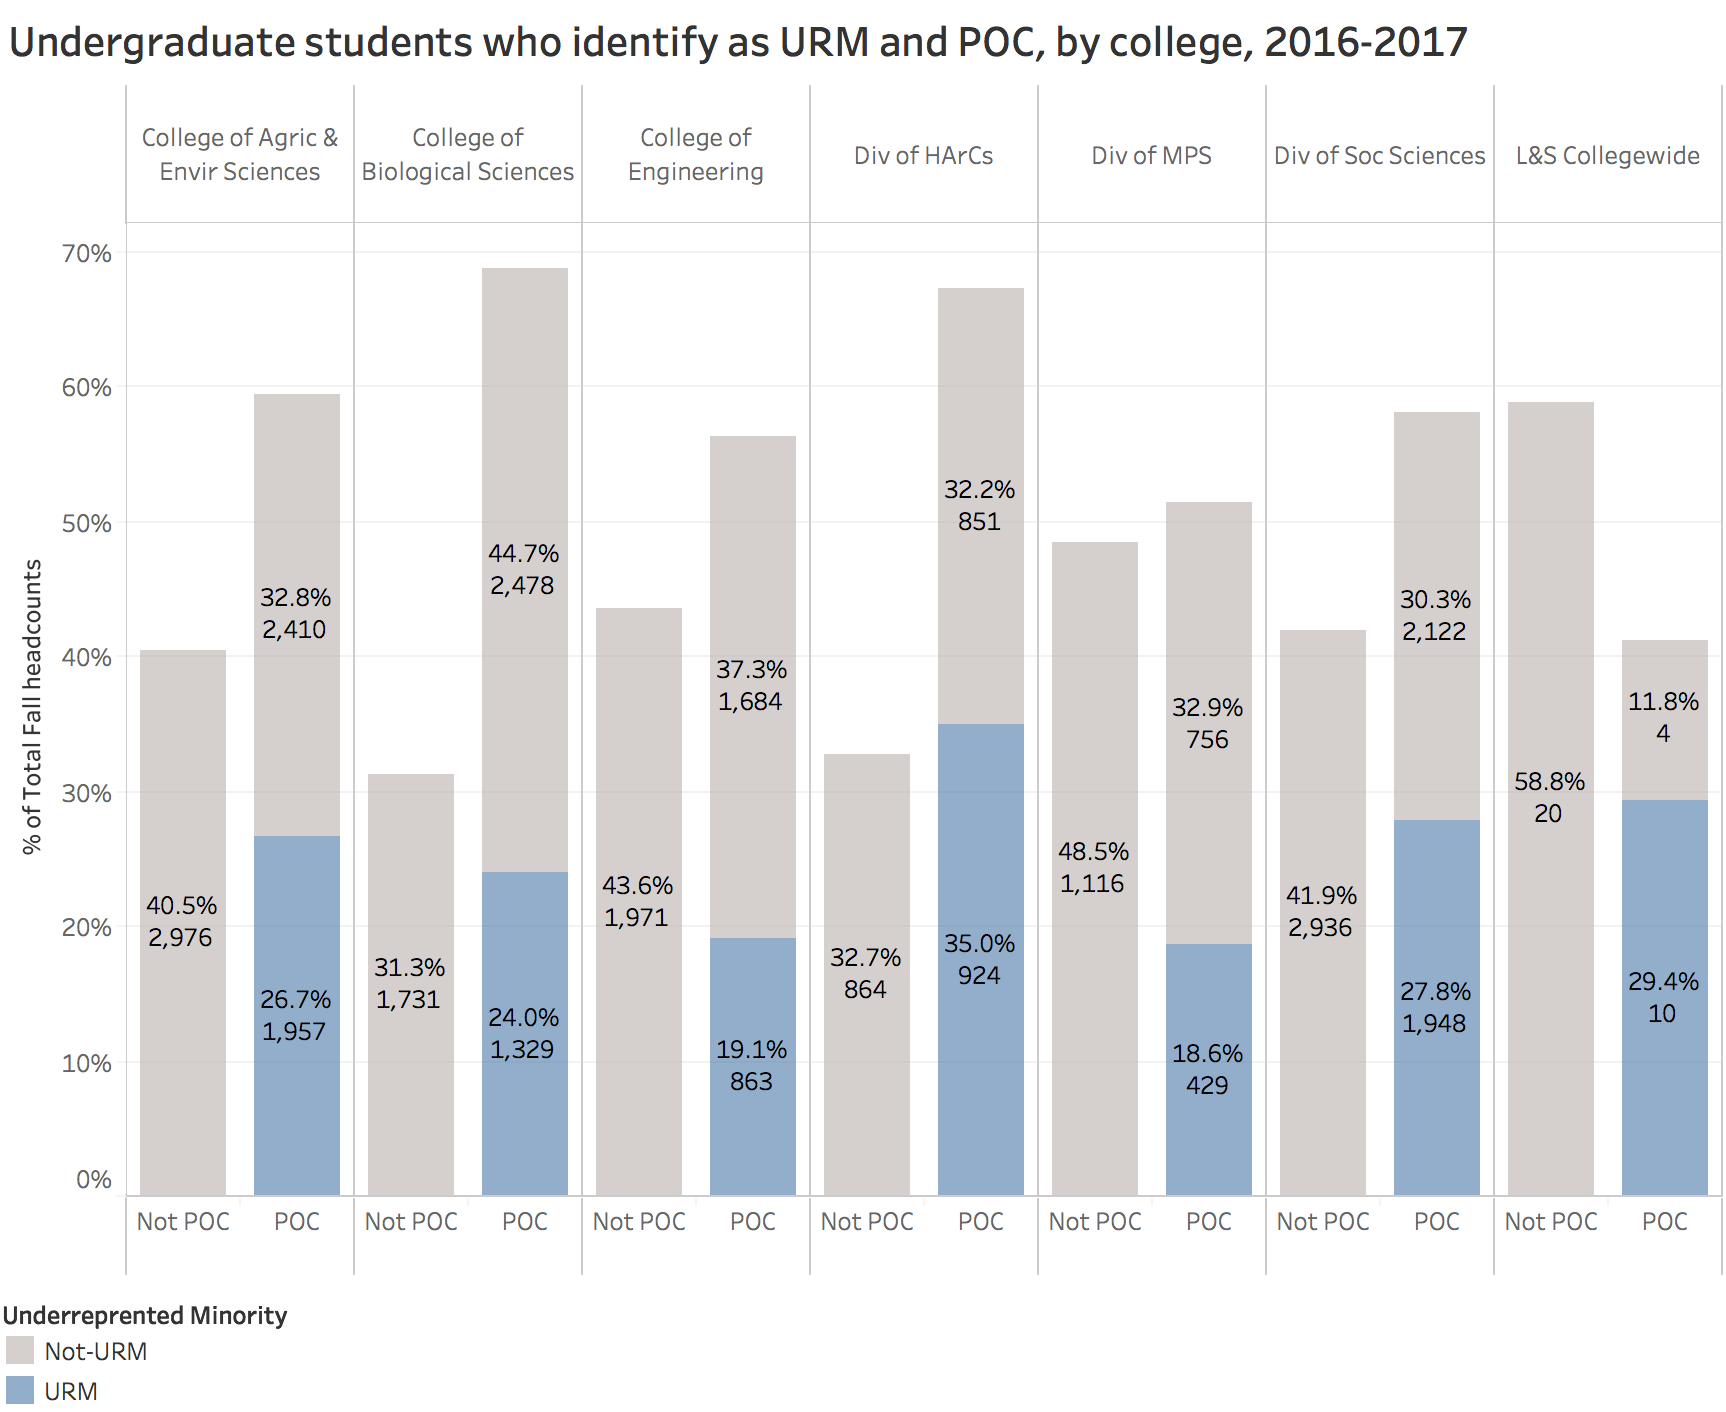 Undergraduate students who identify as URM and POC by college 2016-2017